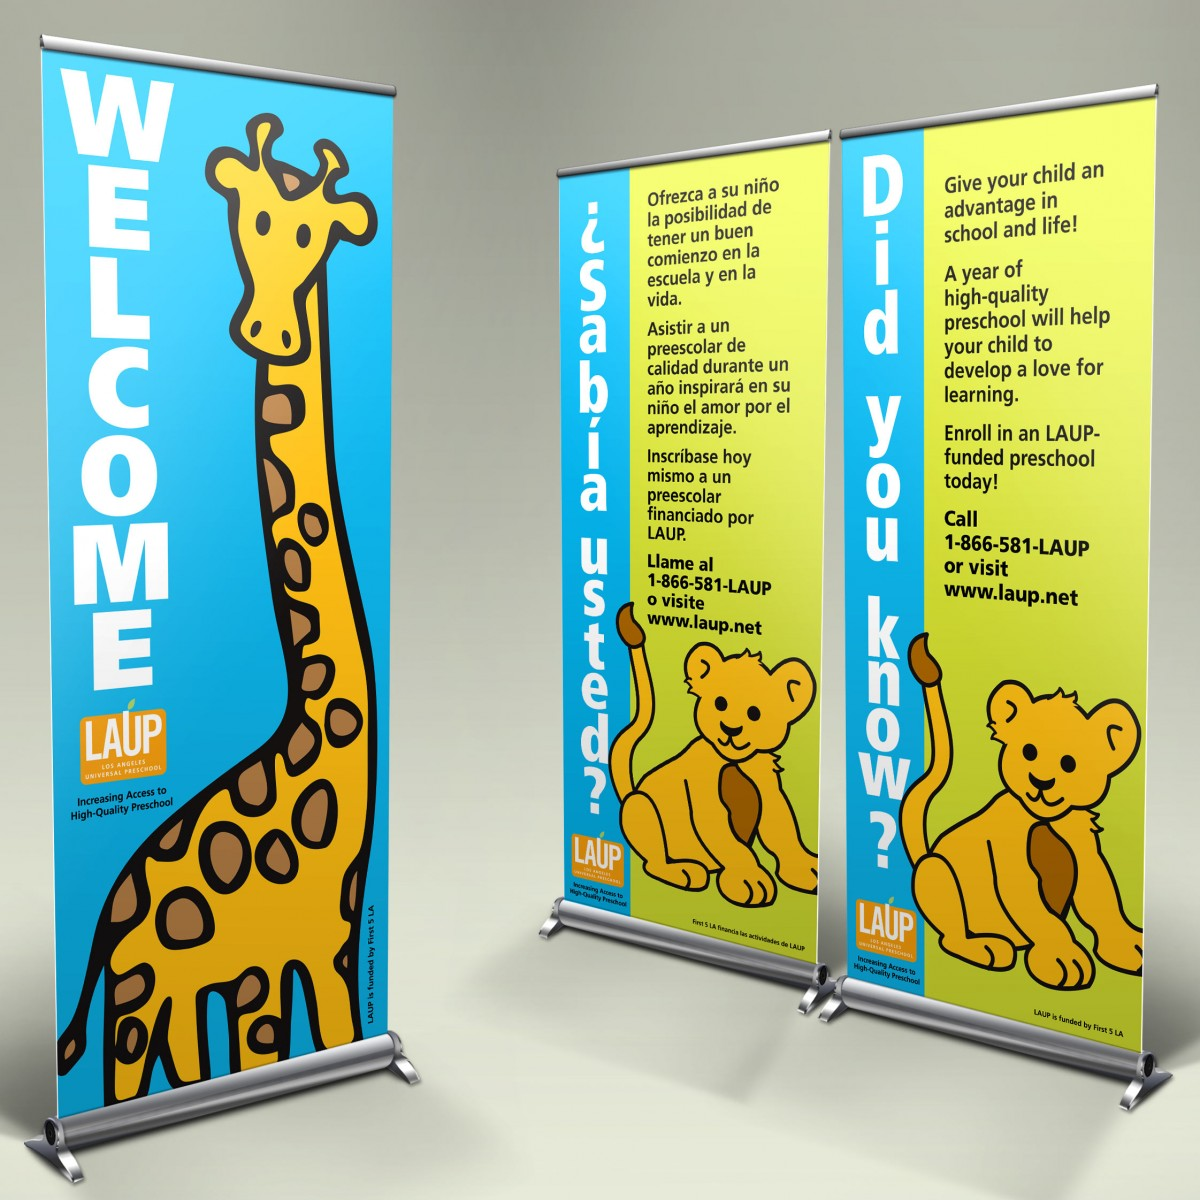 Los Angeles Universal Preschool Banners The Vivere Design Team